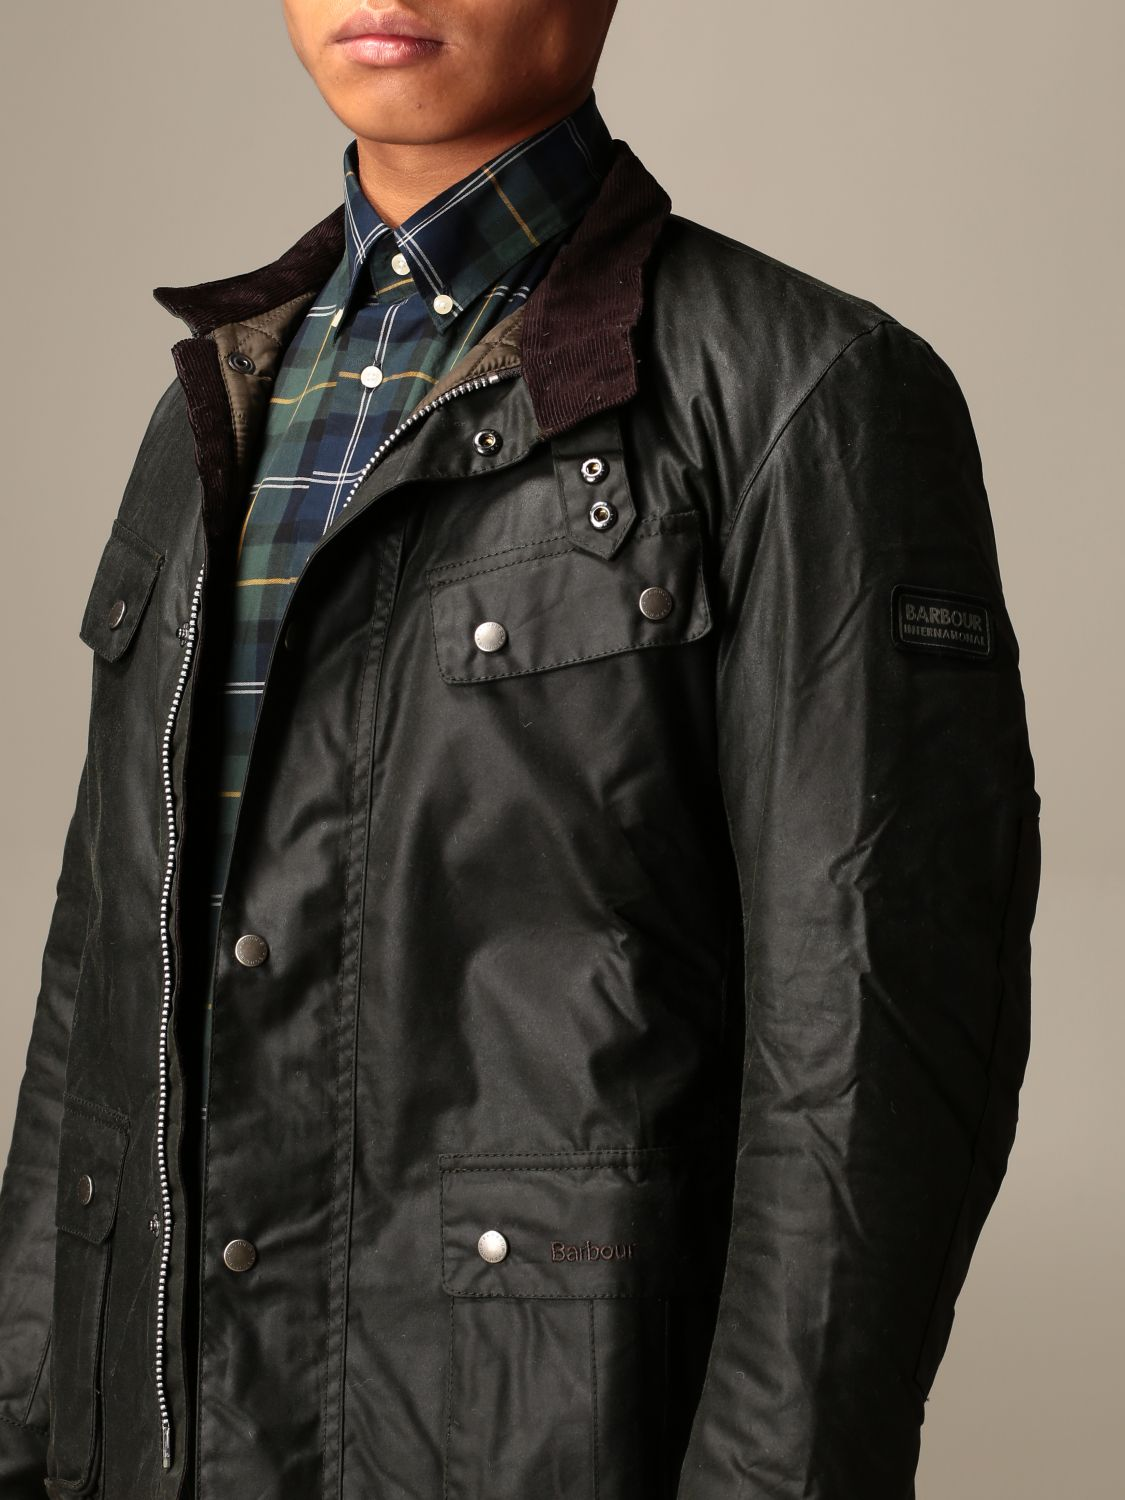 Jacket Barbour: Jacket men Barbour green 4